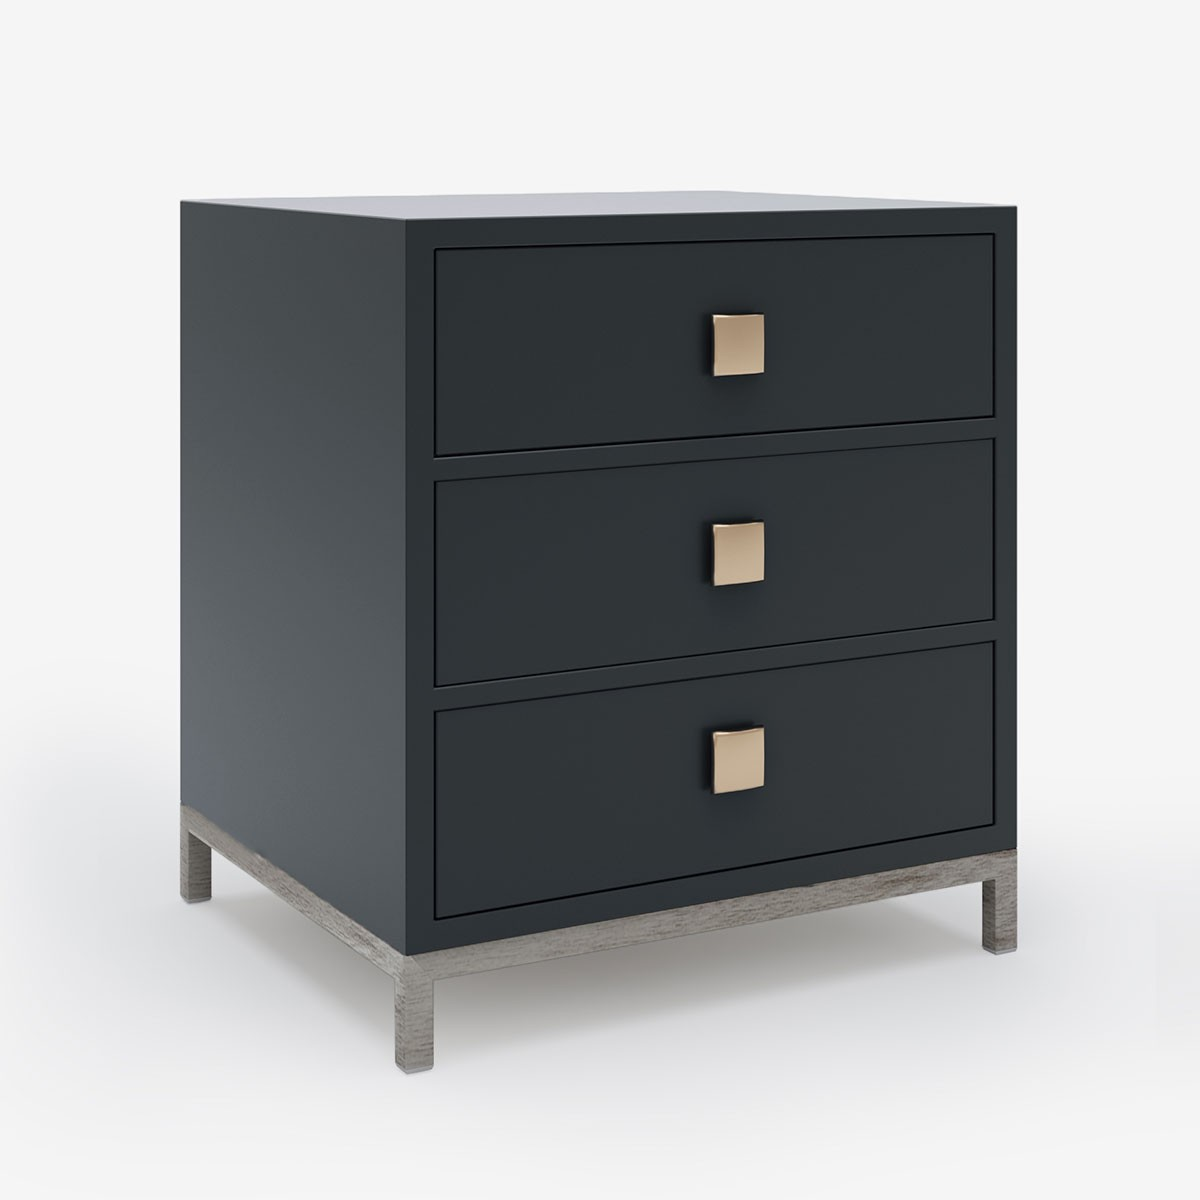 Image shows Drawer Store Bedside in Graphite Grey Lacquer with a Timber Mid Grey base - W45 x D40 x H60 cm